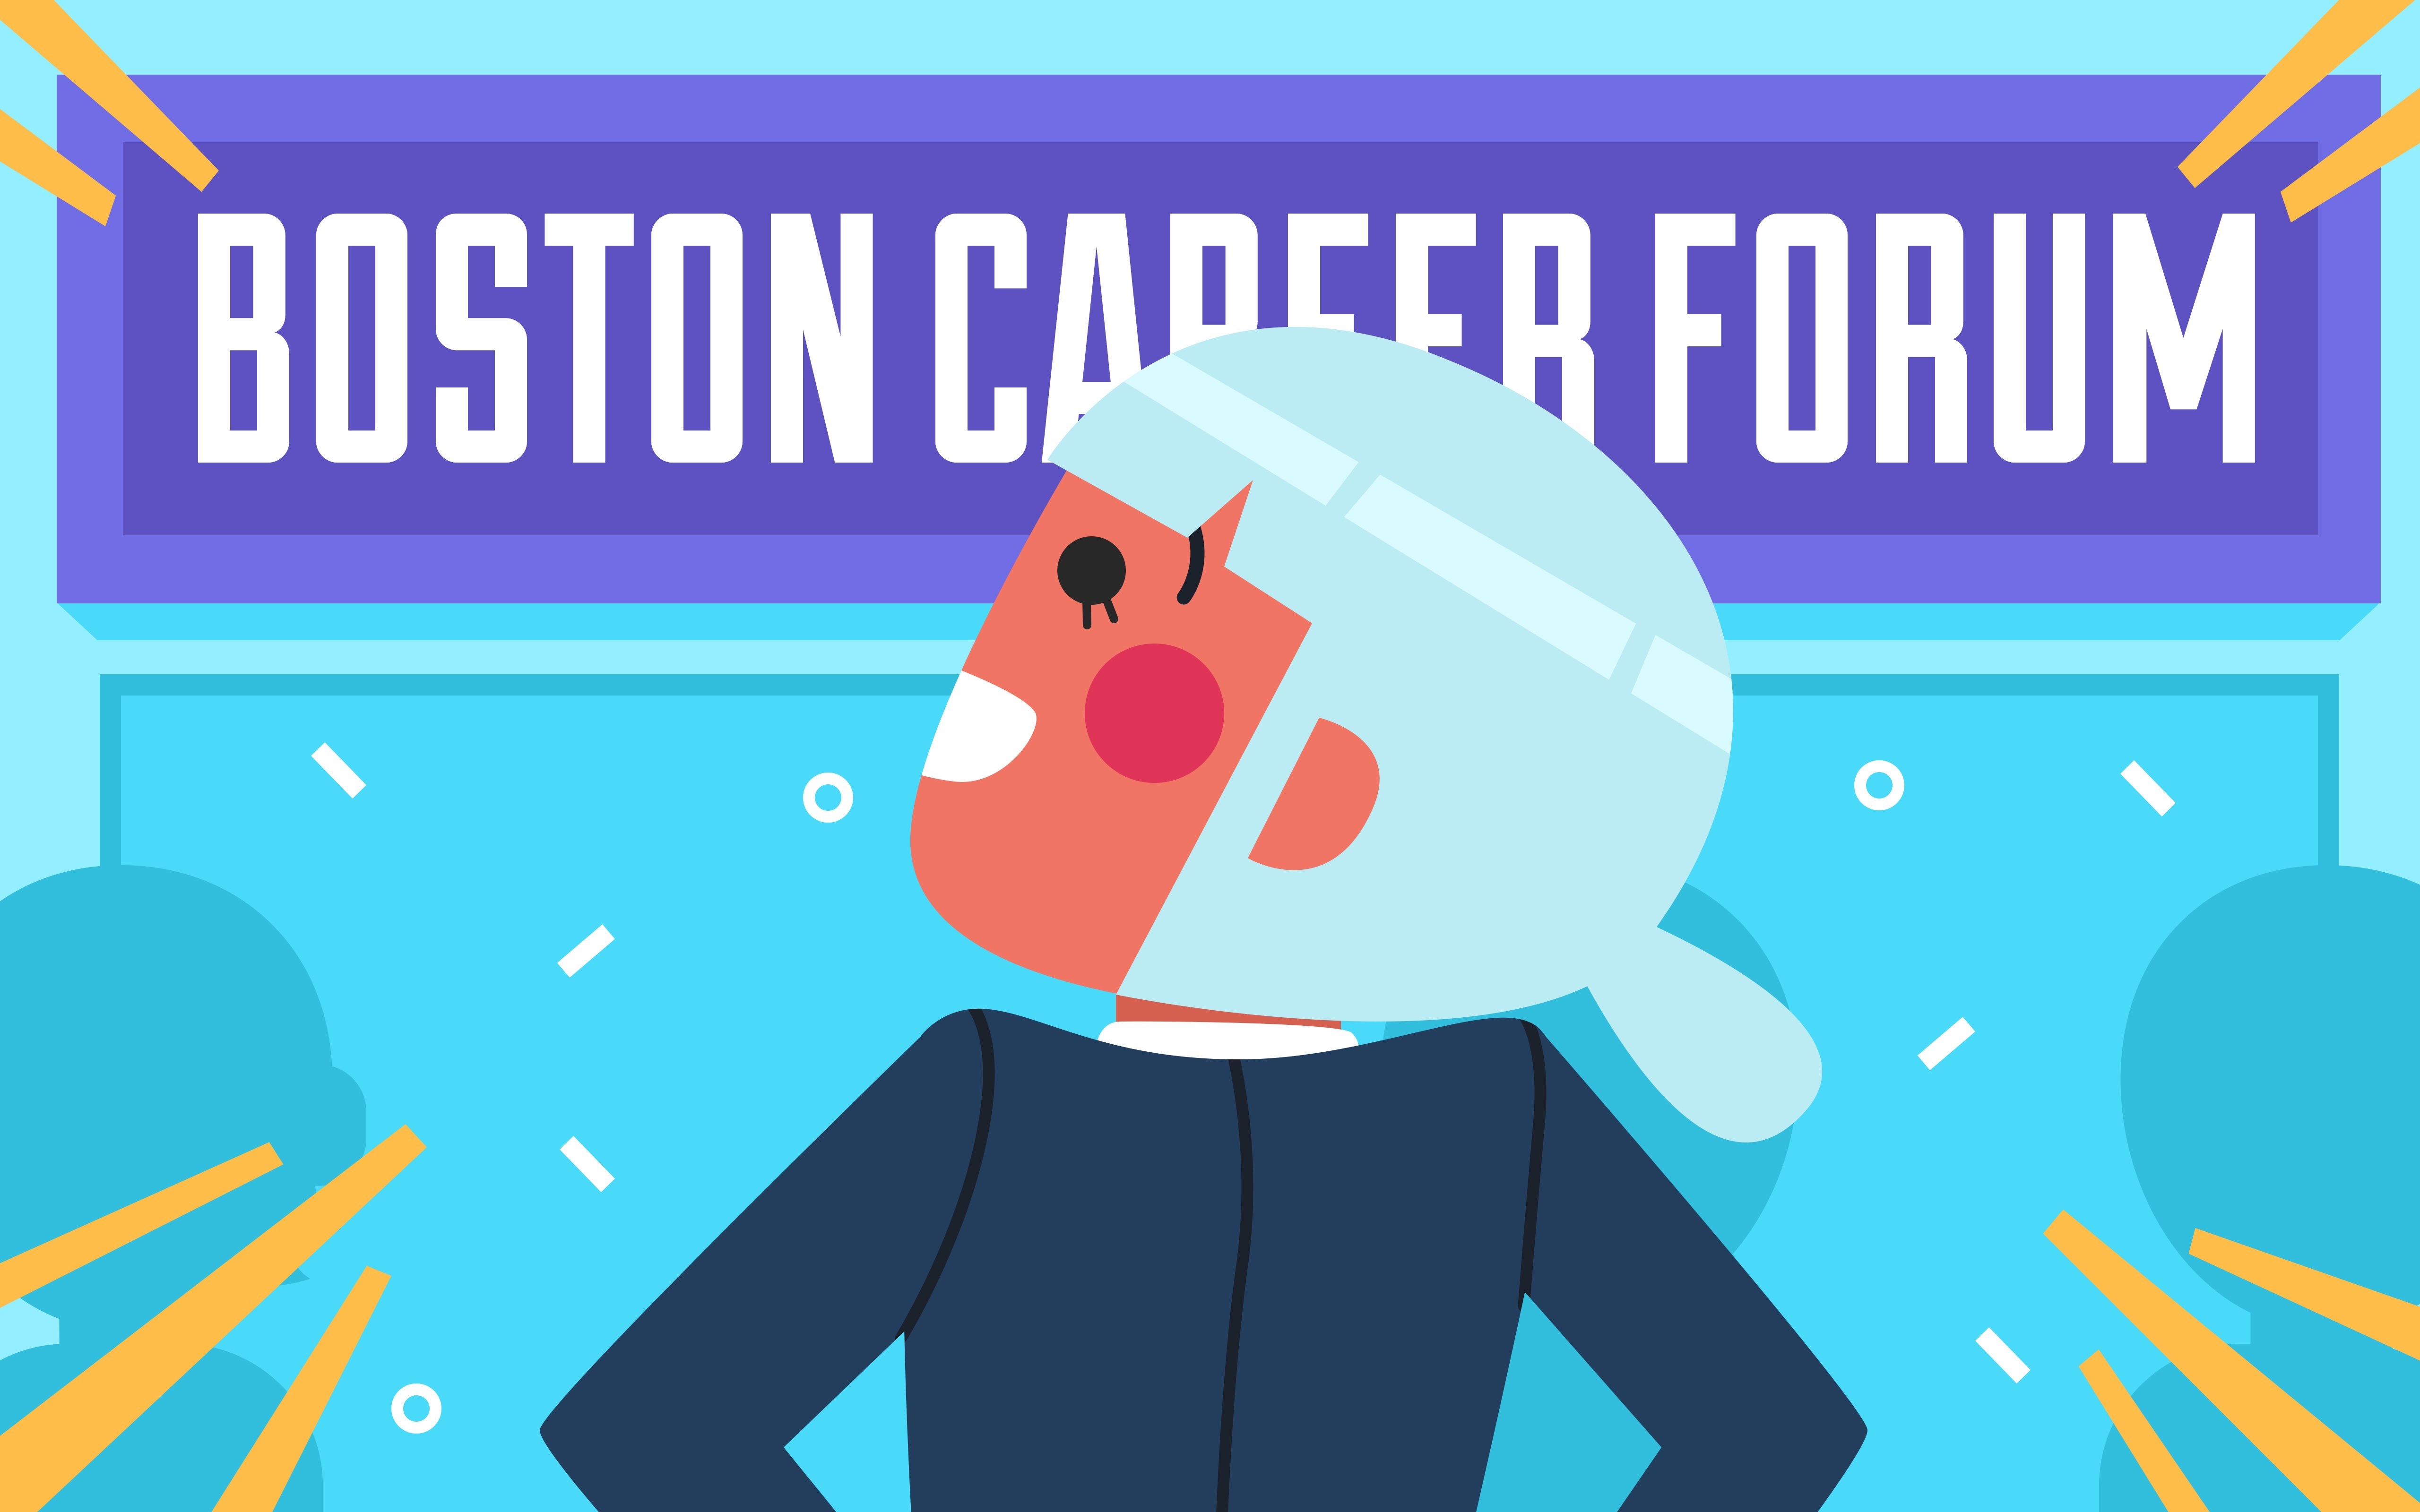 Boston Career Forum: The Ultimate Guide